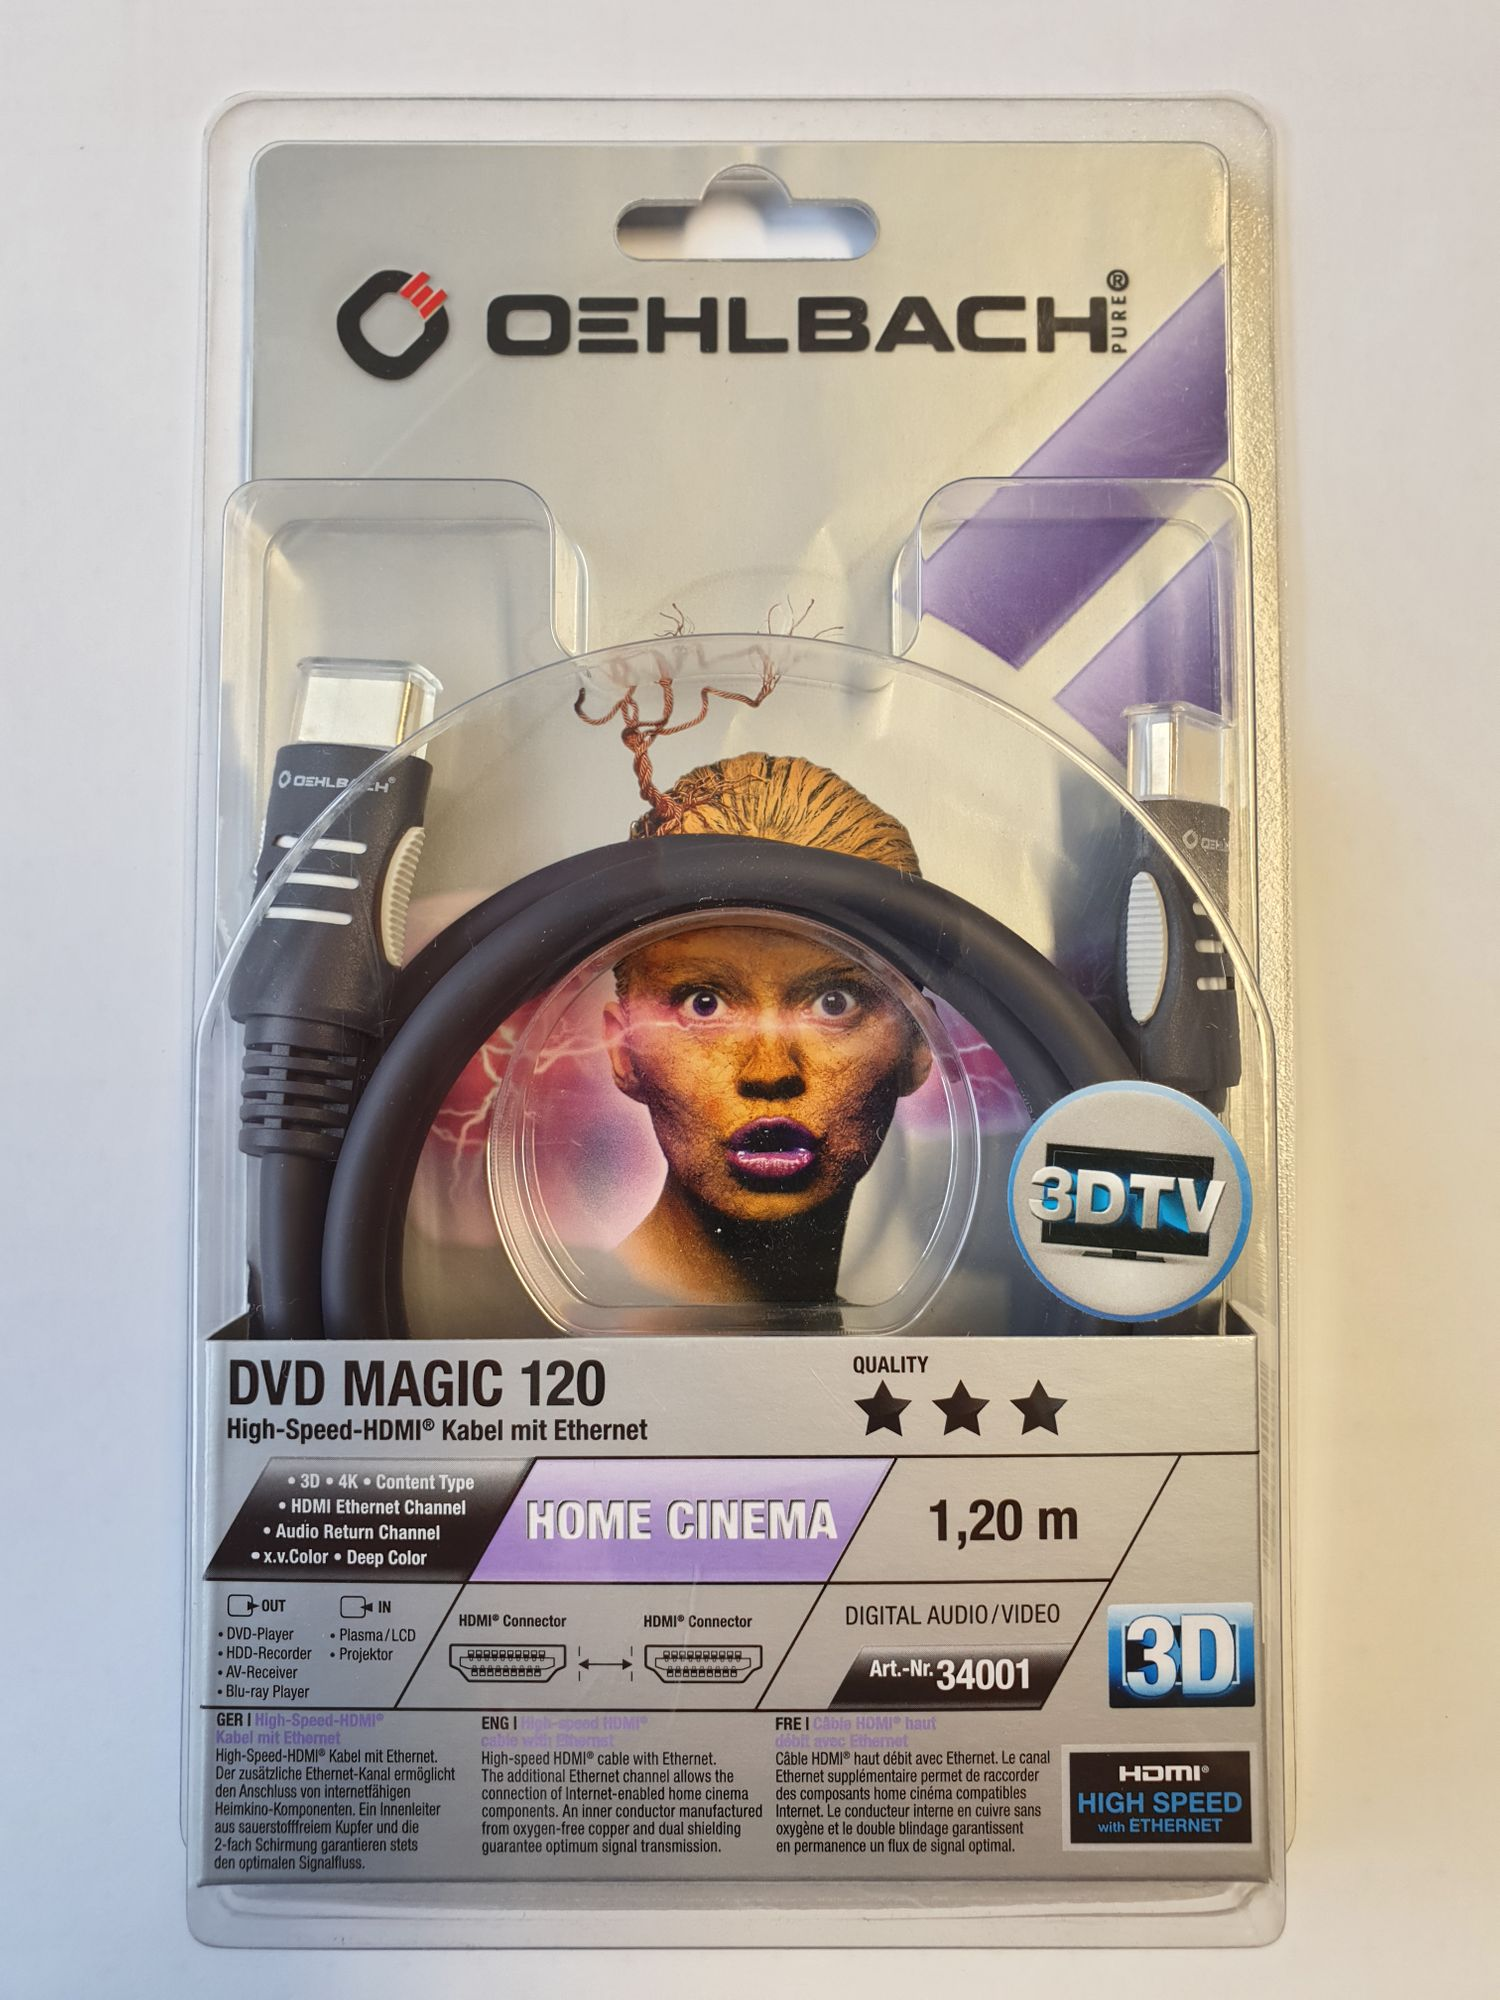 Oelbach High Speed HDMI Kabel mit Ethernet 3 D 1,2 Meter DVD Magic 120